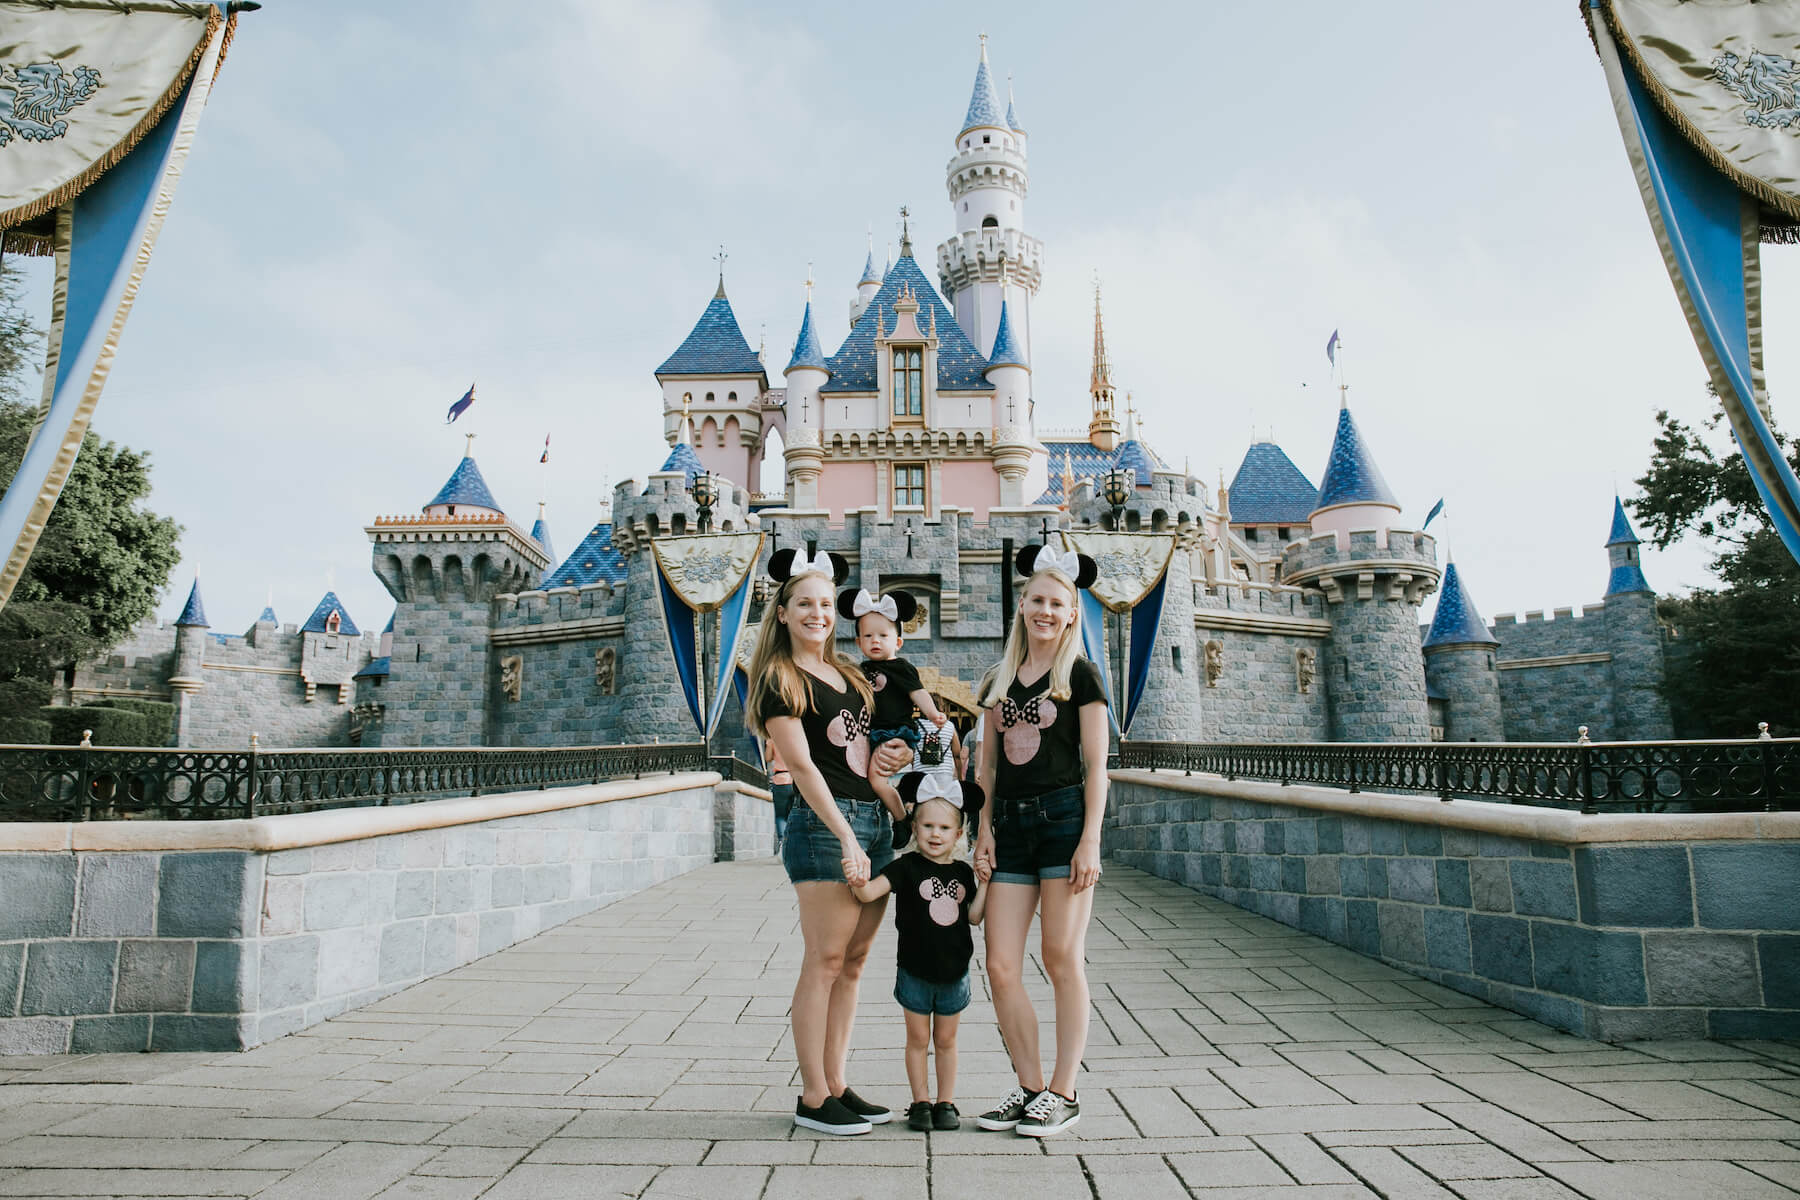 Lesbian Couple Family in Disneyland Anaheim California Unites States USA